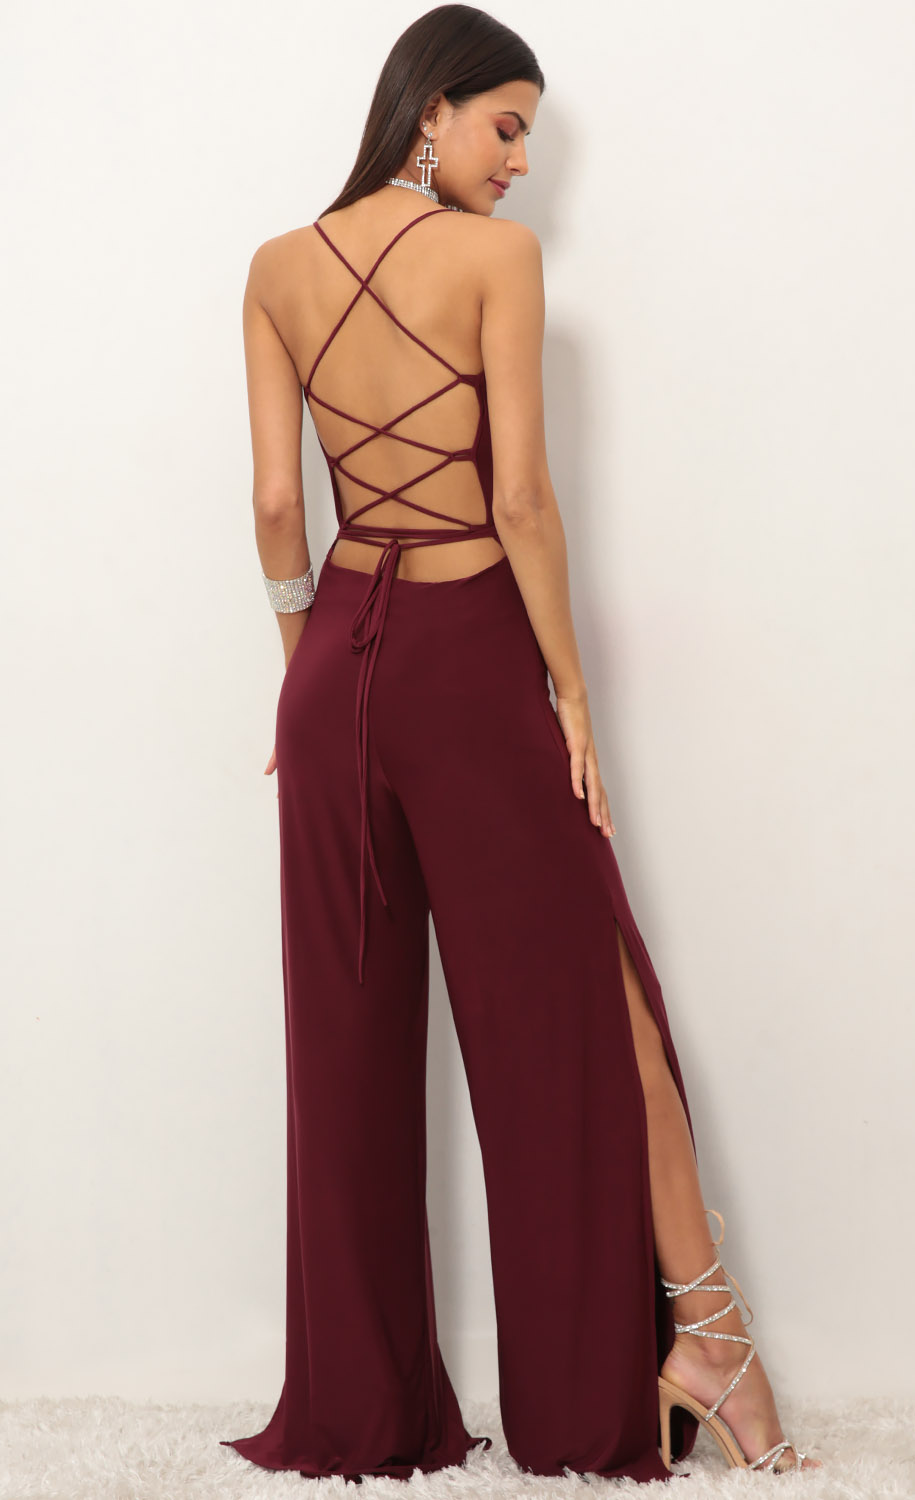 Eliana Cowl Neck Jumpsuit in Burgundy